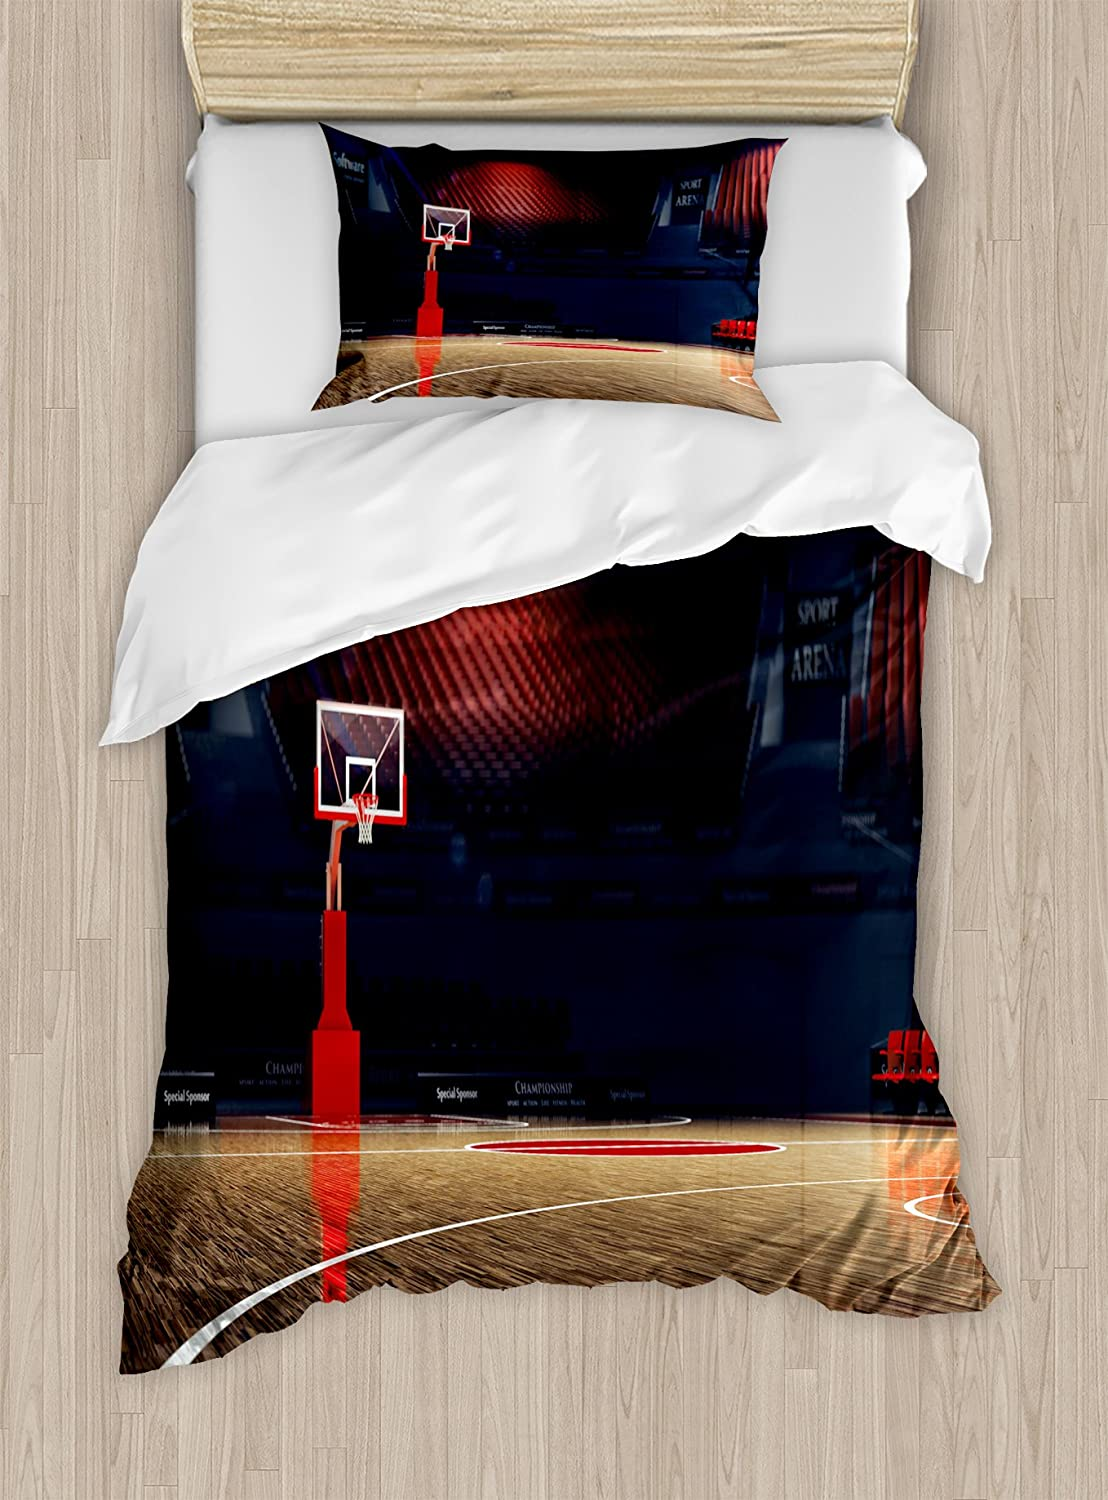 Ambesonne Basketball Duvet Cover Set, Picture of Empty Basketball Court Sport Arena with Wood Floor Print, Decorative 2 Piece Bedding Set with 1 Pillow Sham, Twin Size, Black Brown